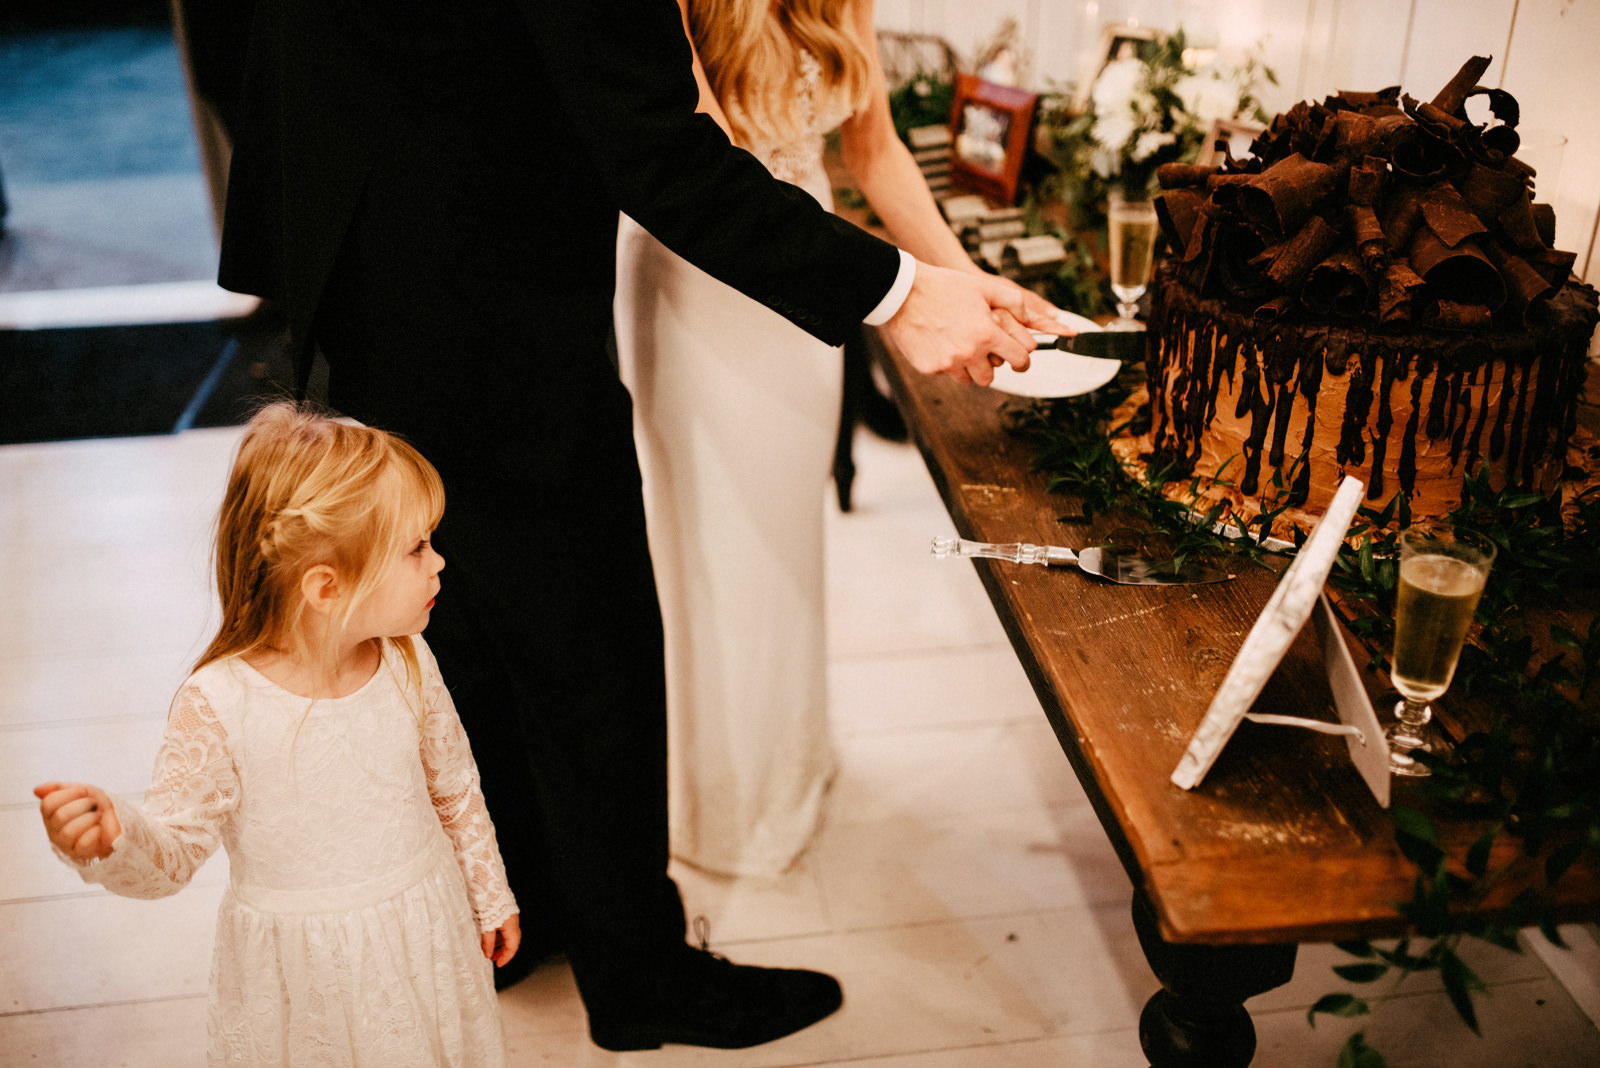 191-flower-girl-watching-cake-cutting-at-the-white-sparrow-barn-by-dallas-wedding-photographer-ryan-flynn.jpg